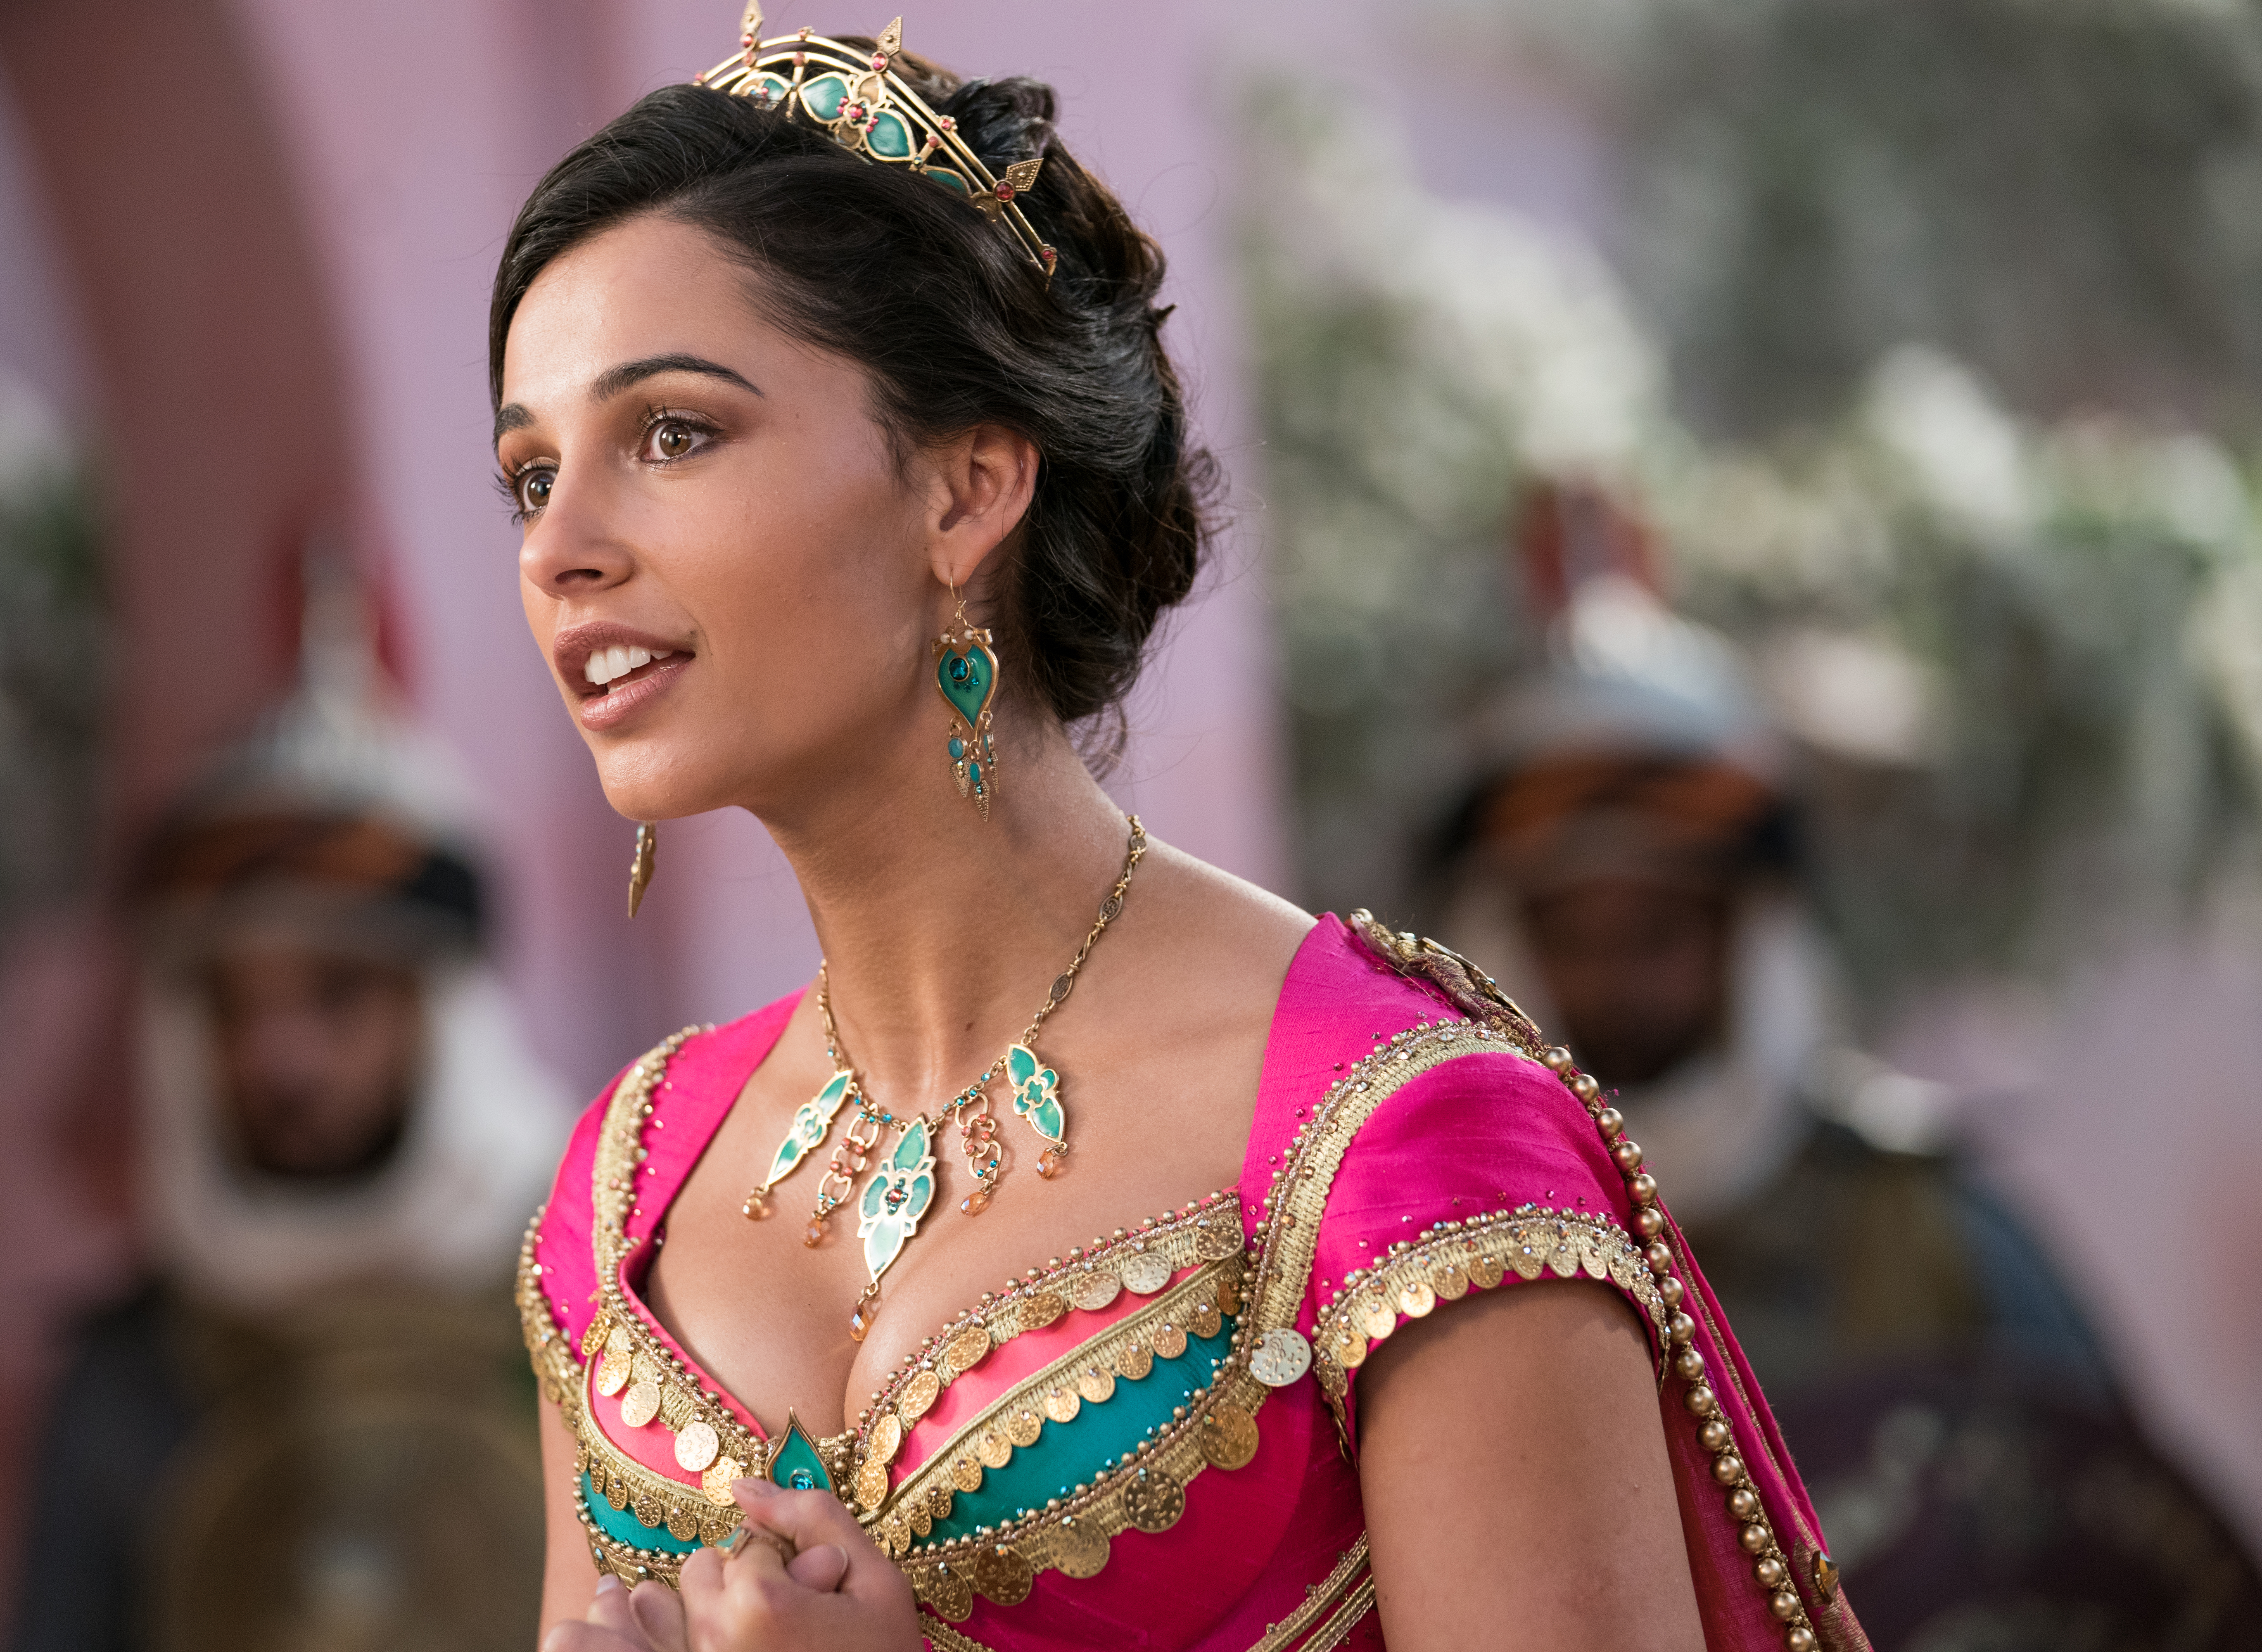 Disney finally gets the 'updated' princesses right with Aladdin's Jasmine